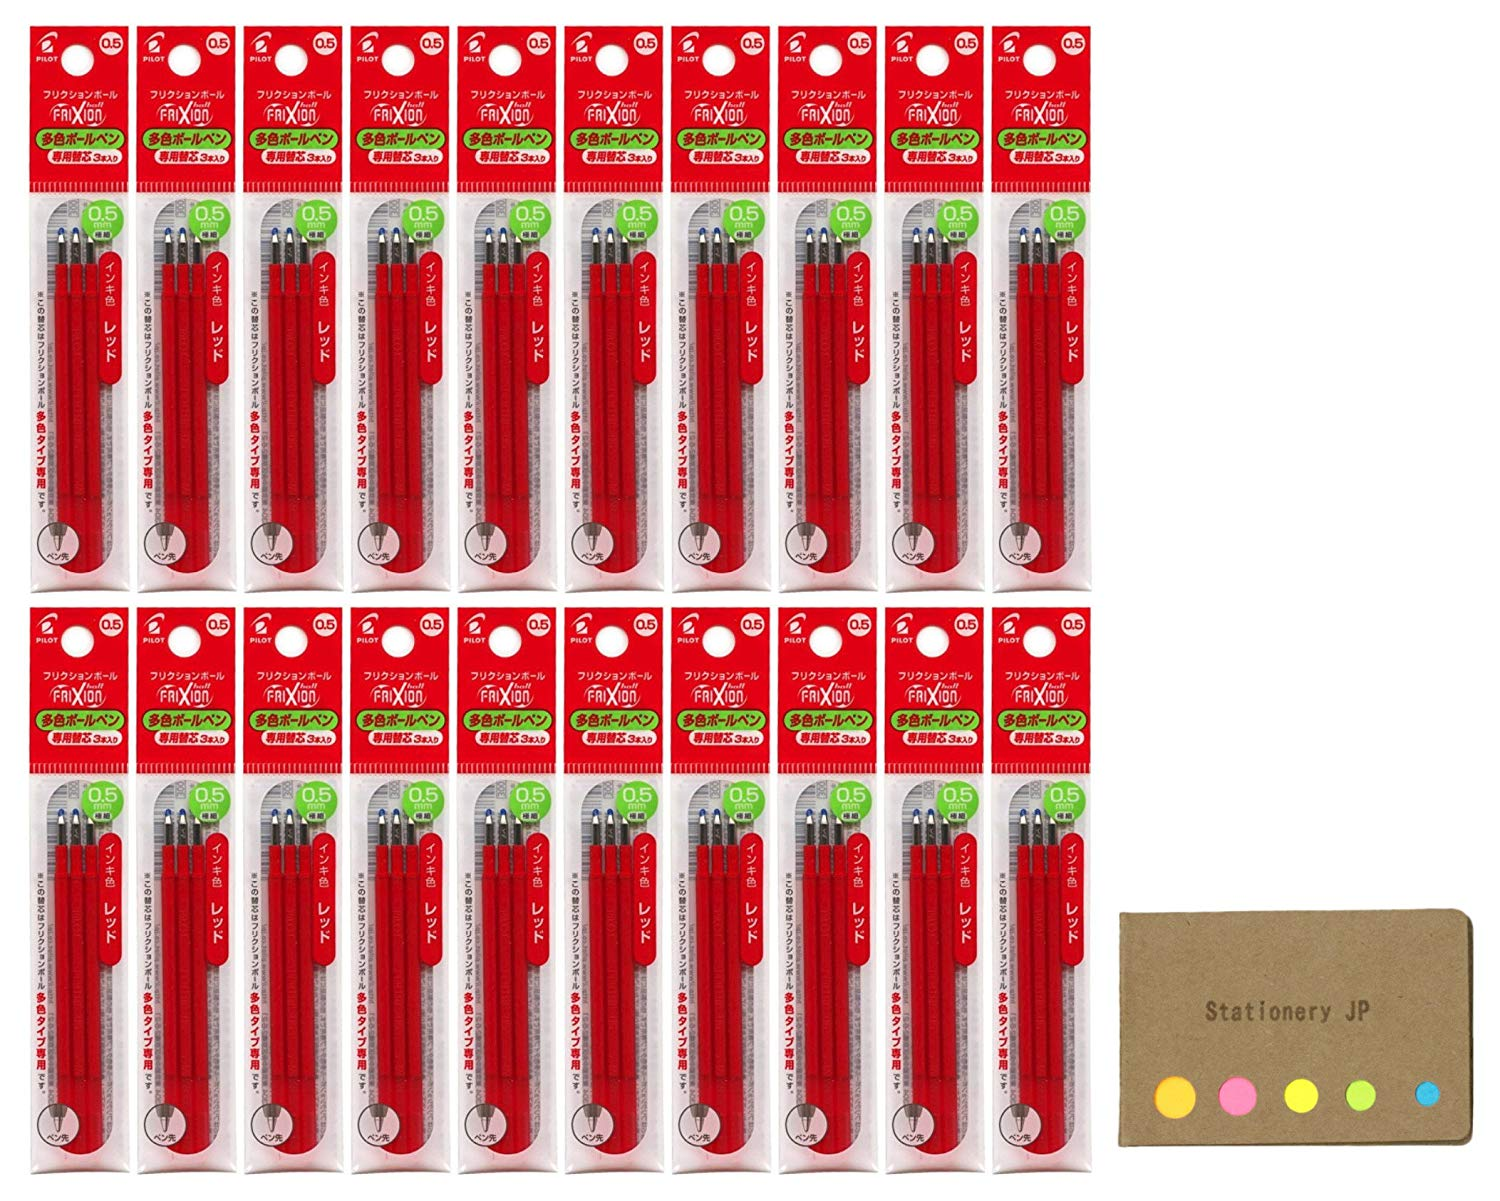 Pilot Pilot Gel Ink Refills for FriXion Ball 3 Gel Ink Multi Pen & FriXion Ball 4 Gel Ink Multi Pen, 0.5mm, Red Ink, 20-pack, Sticky Notes Value Set